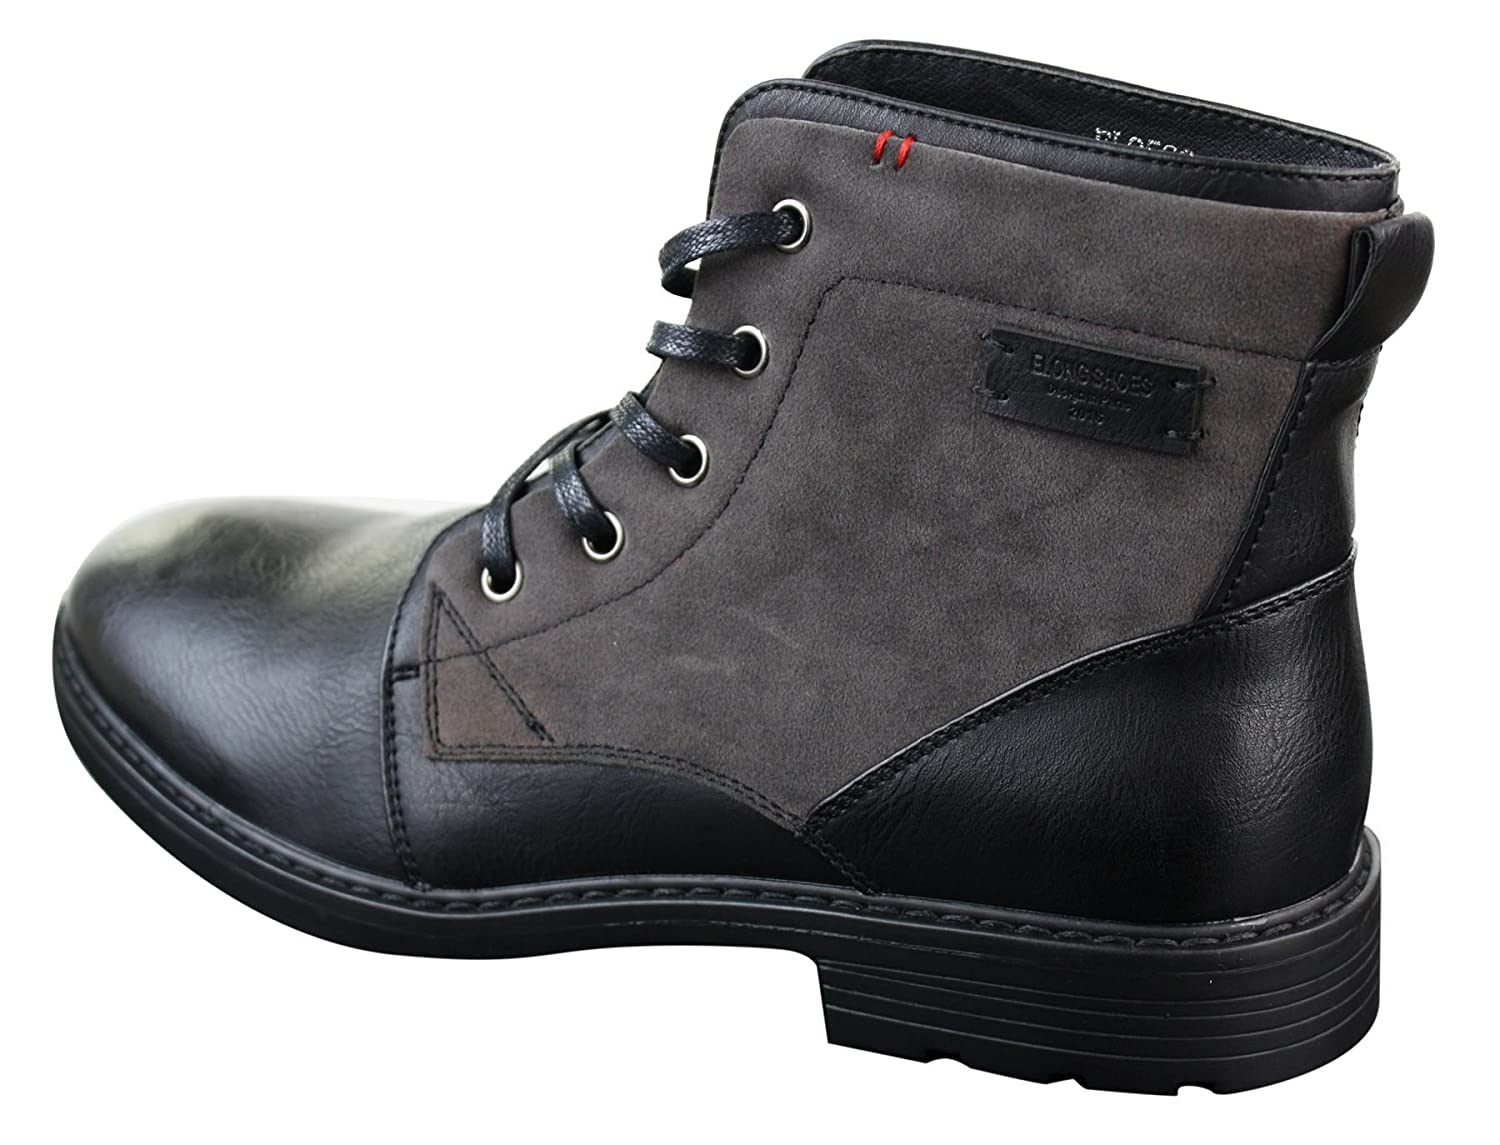 Mens PU Leather & Suede Lace Ankle Combat Cowboy Military Army Biker Boots  Shoes: Amazon.co.uk: Shoes & Bags